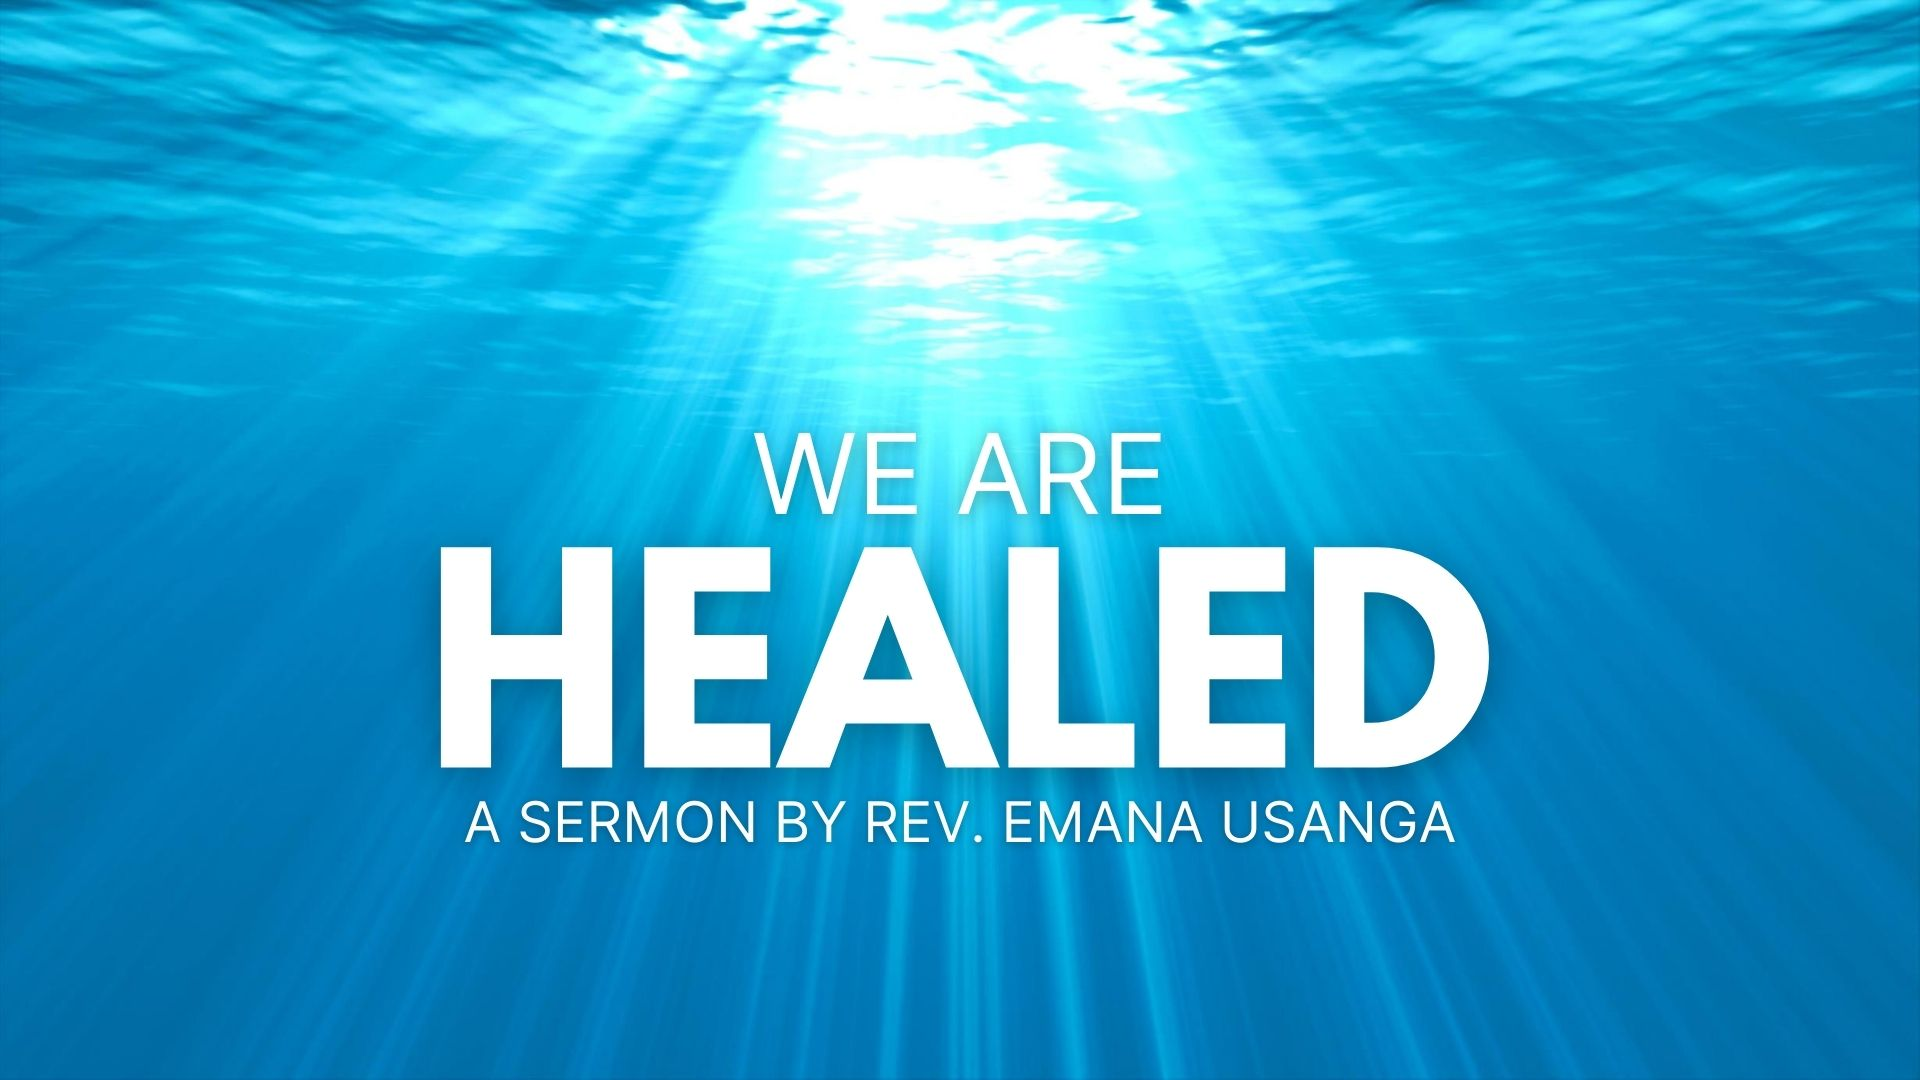 We Are Healed